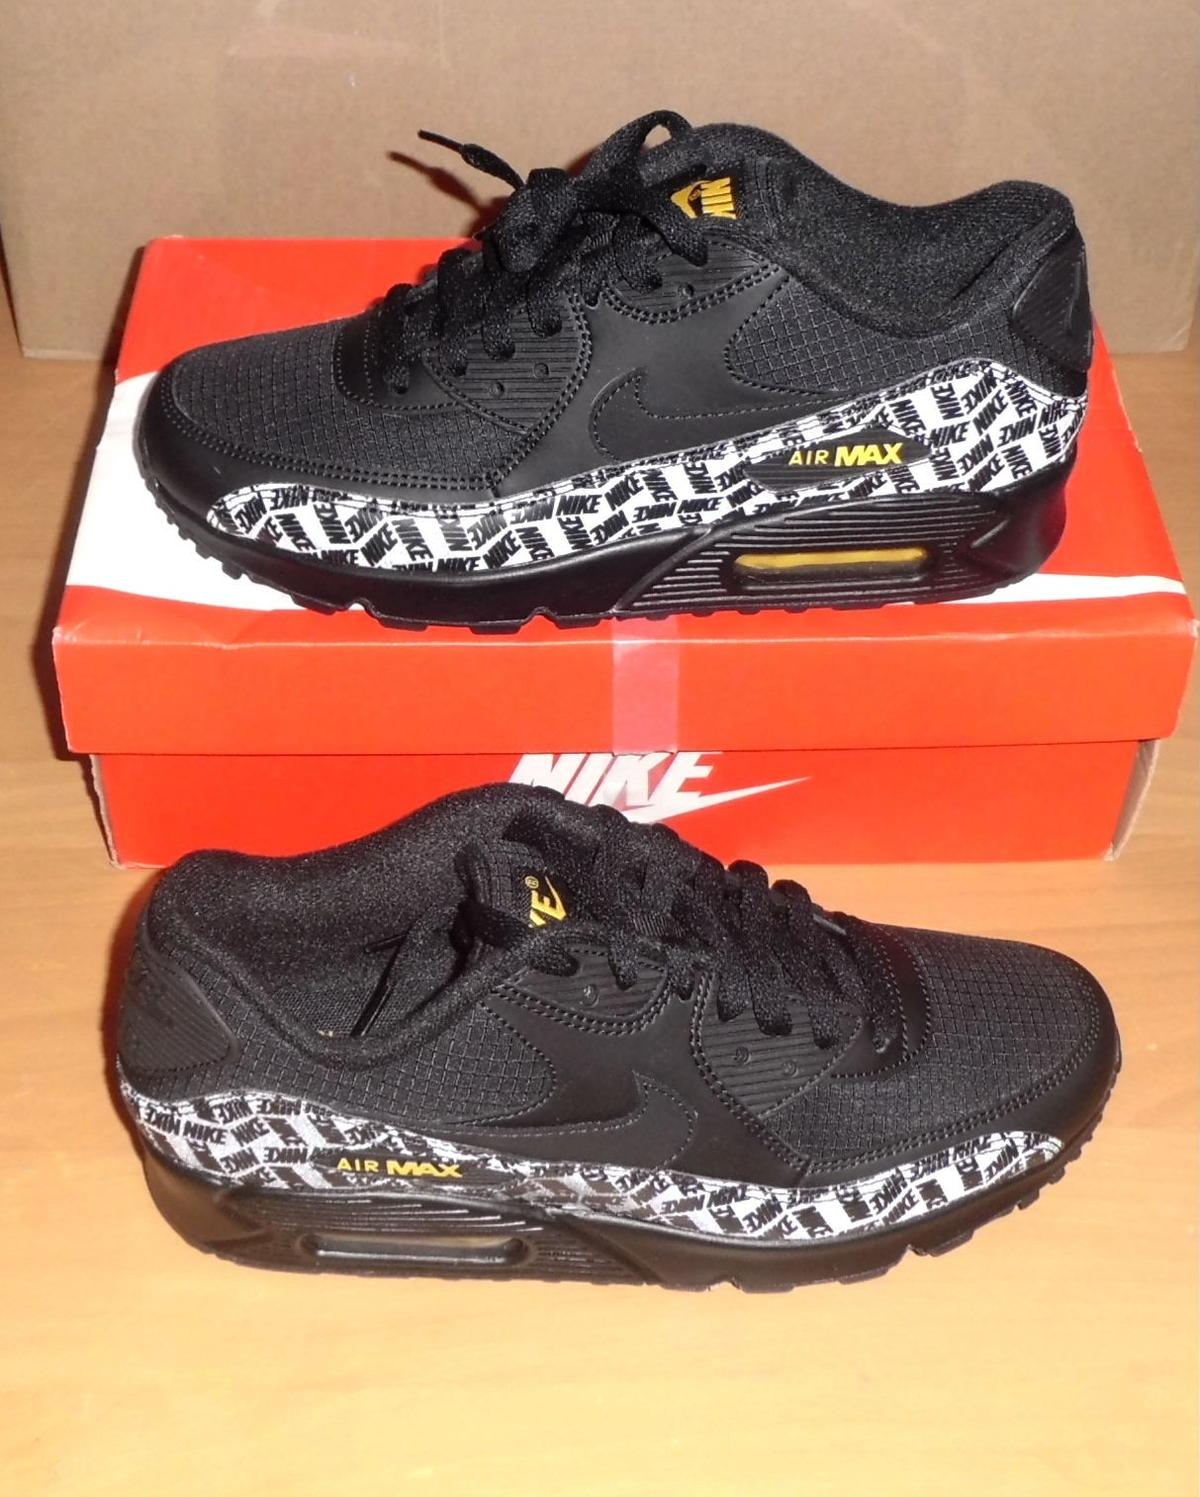 Details about Nike Air Max Thea trainers BlackWhite UK 7 EU 41